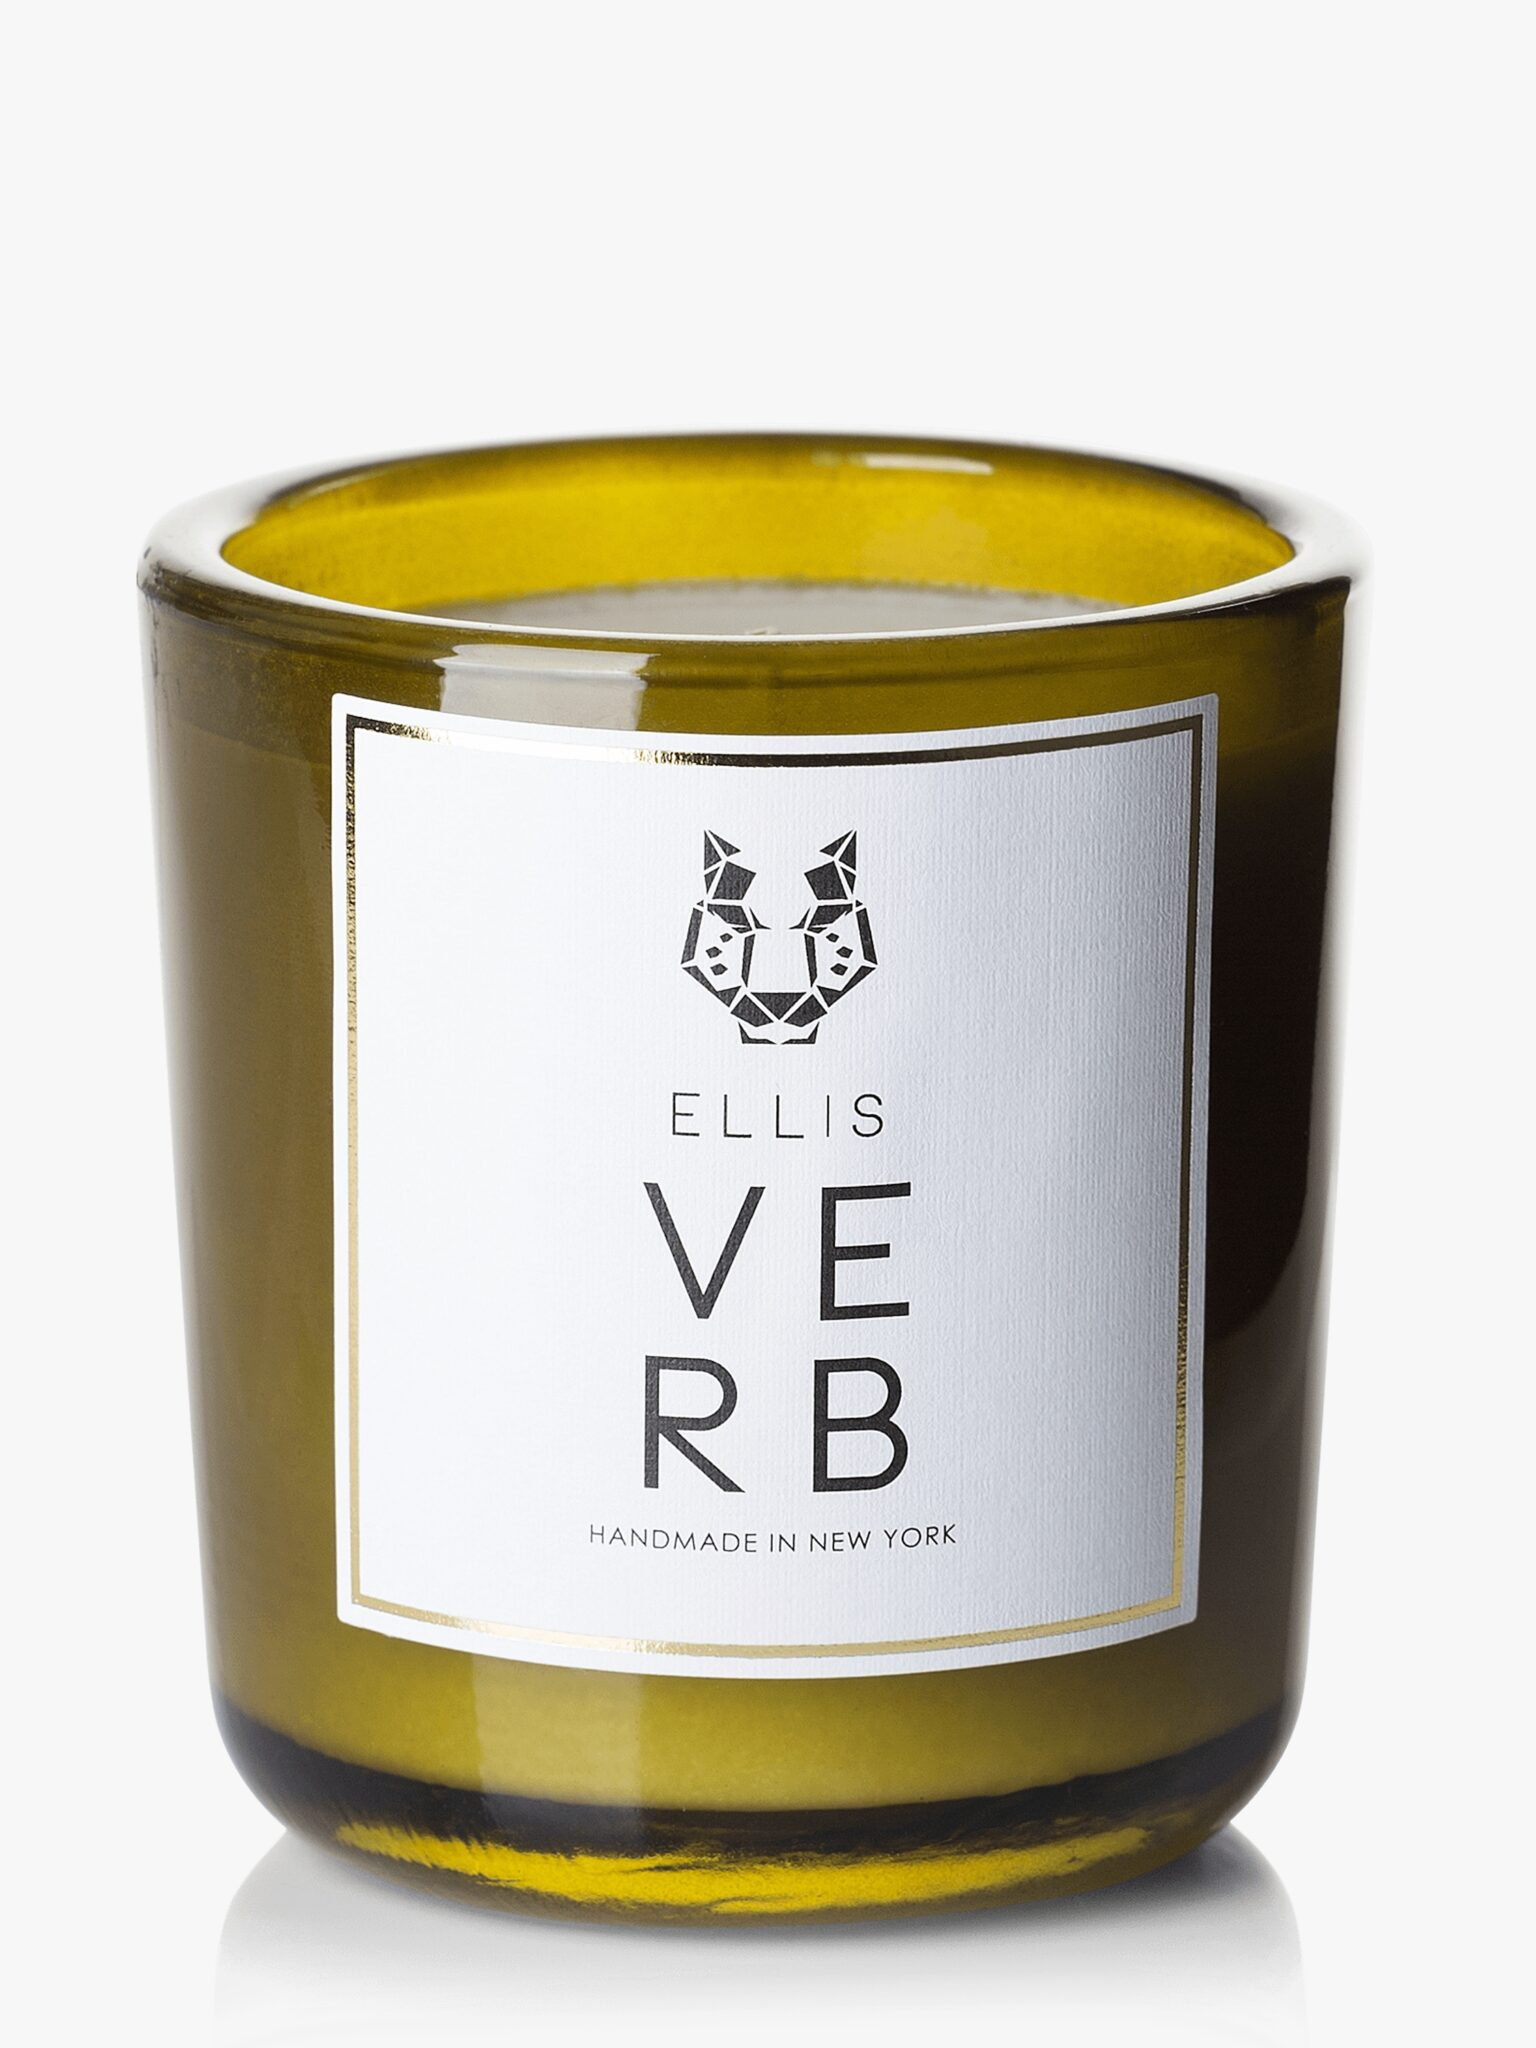 Ellis Brooklyn Verb Scented Candle 6.5 oz $60.00